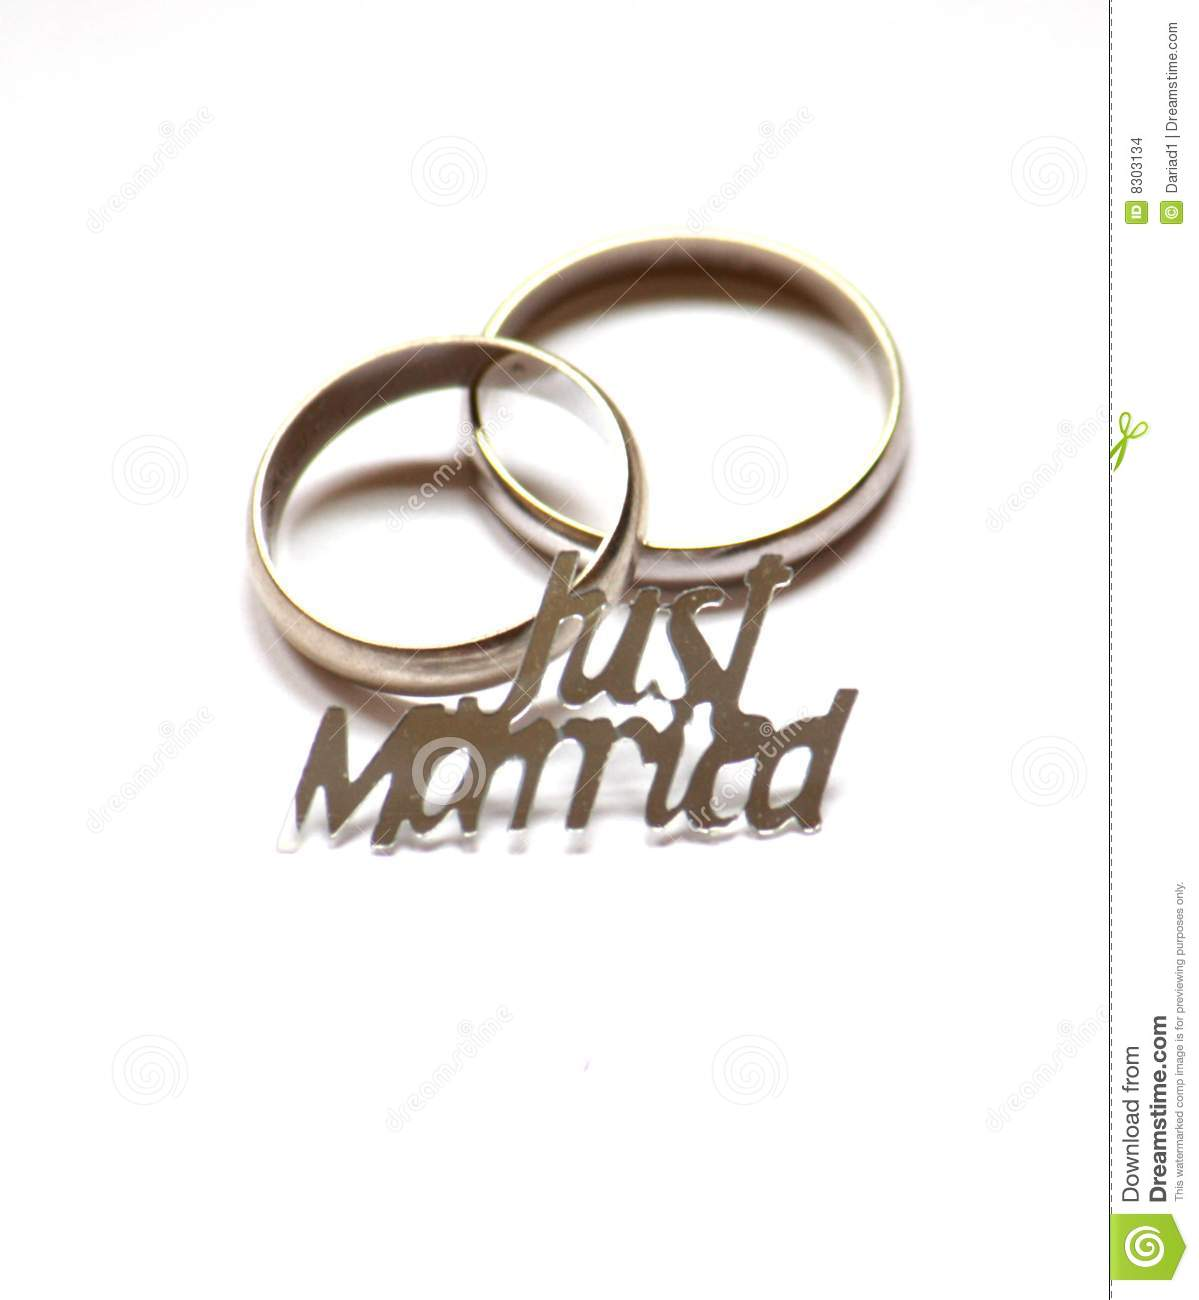 Close up of two rings and a just married sign.